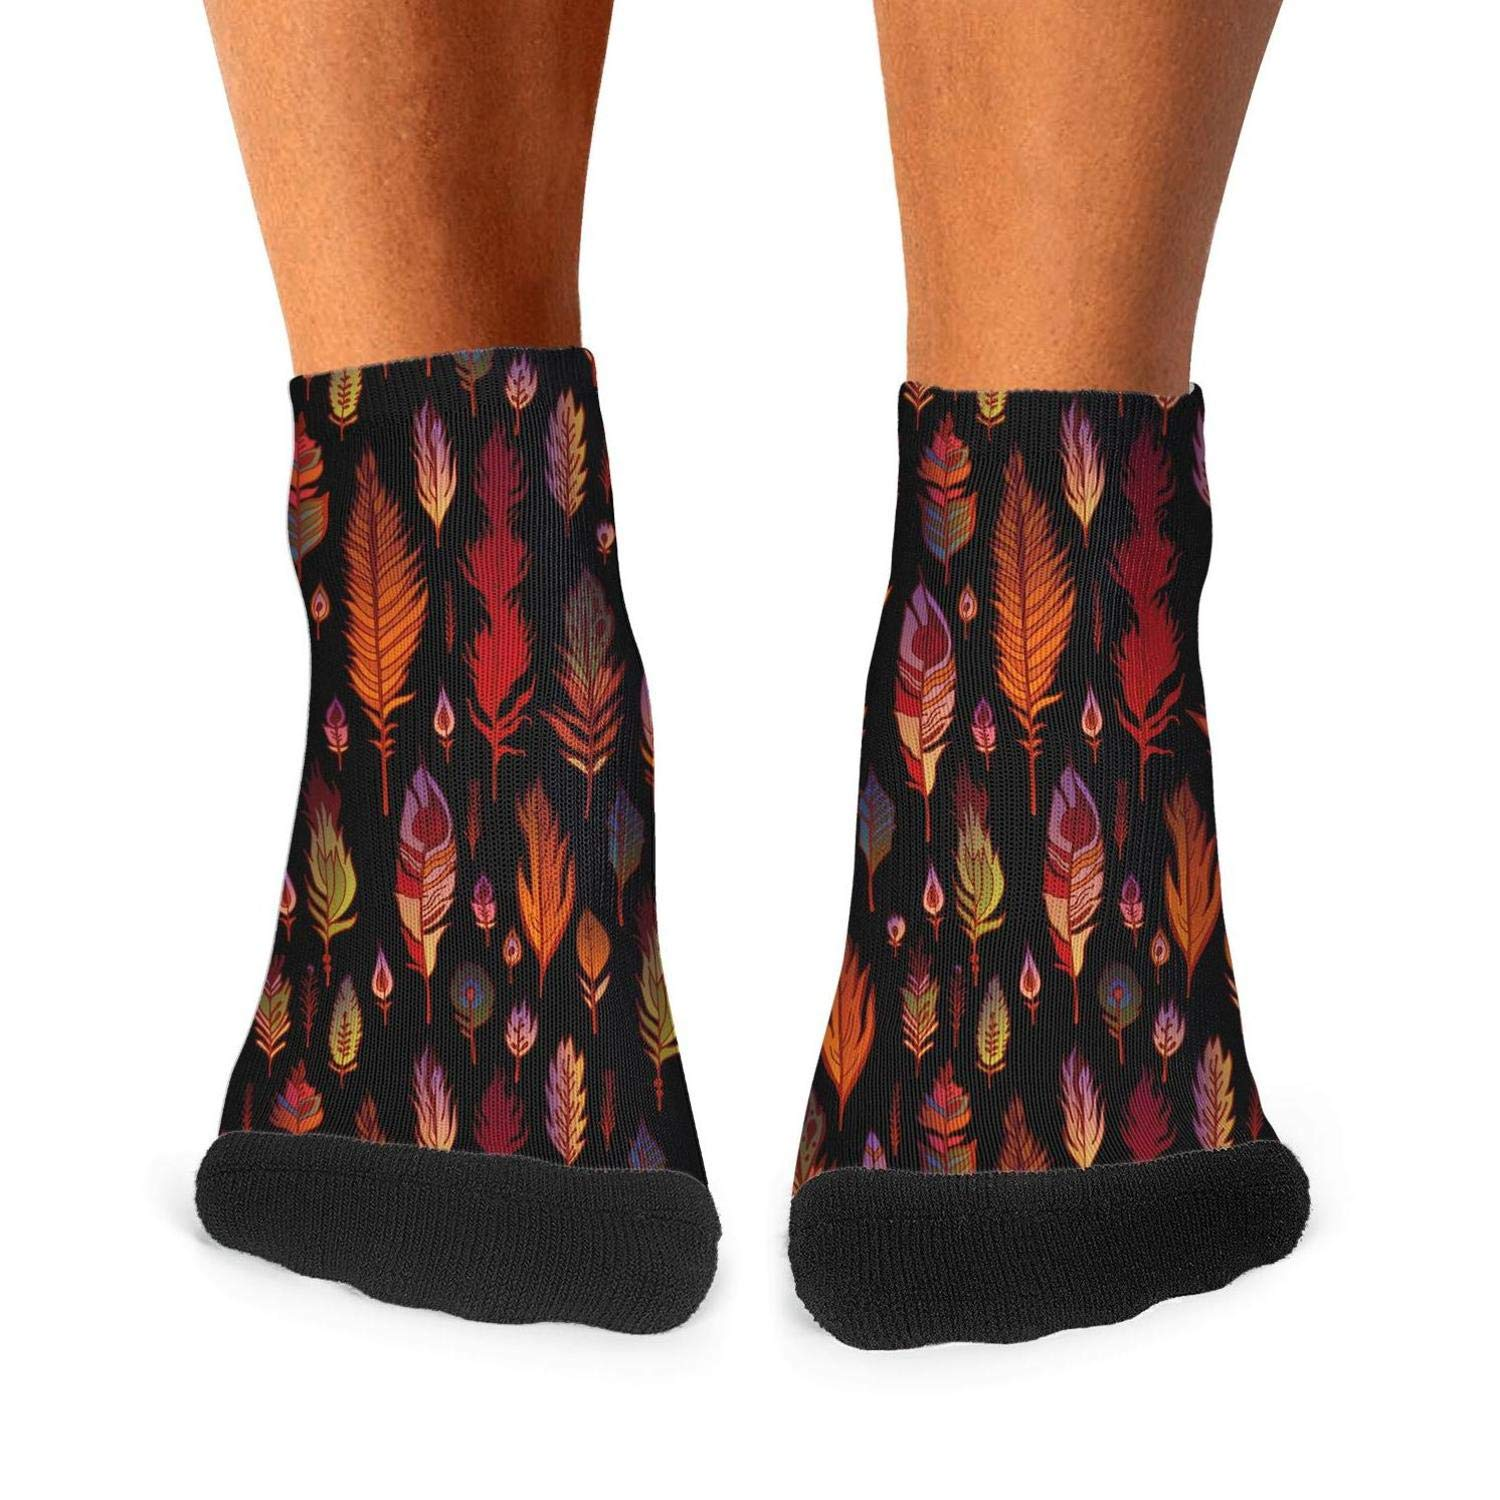 Low Cut Mens Socks The texture of pink feathers Warm Socks Slouch Boot Socks